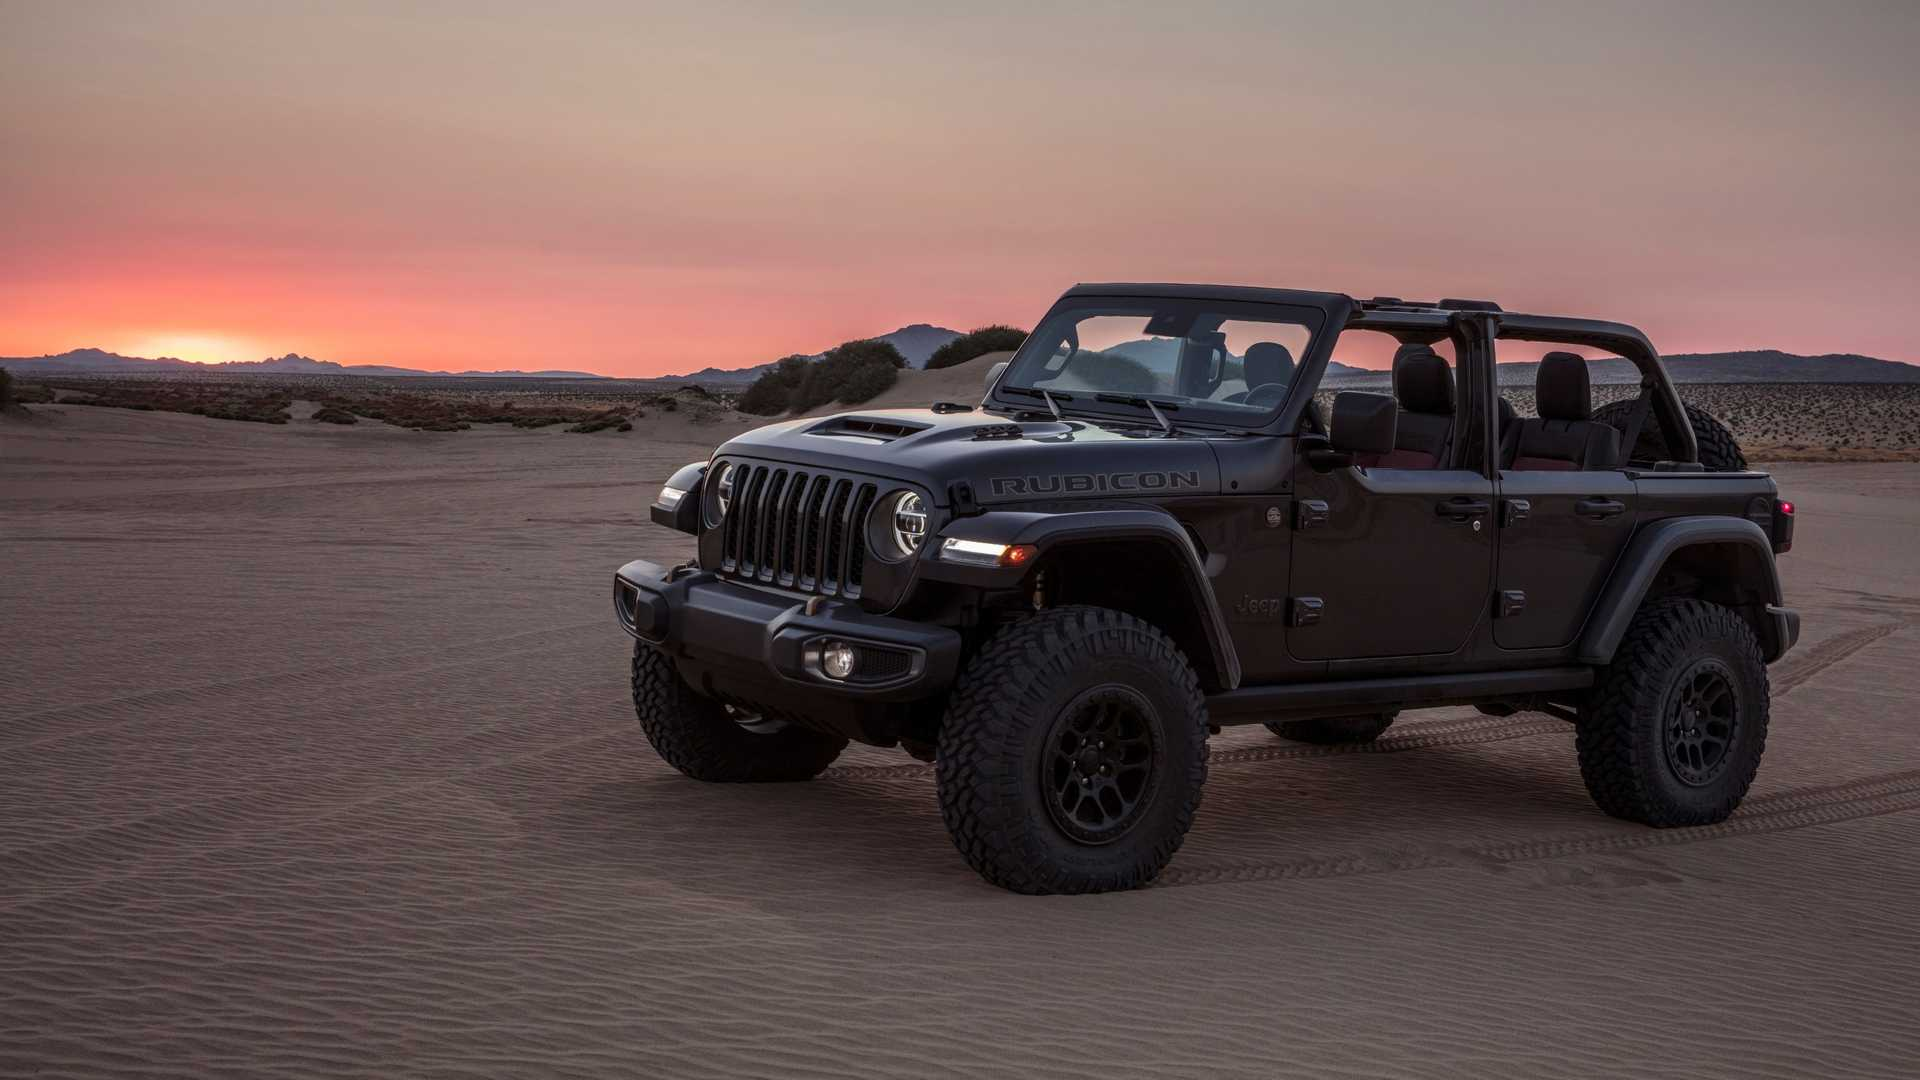 2021-jeep-wrangler-rubicon-392-side-view-7